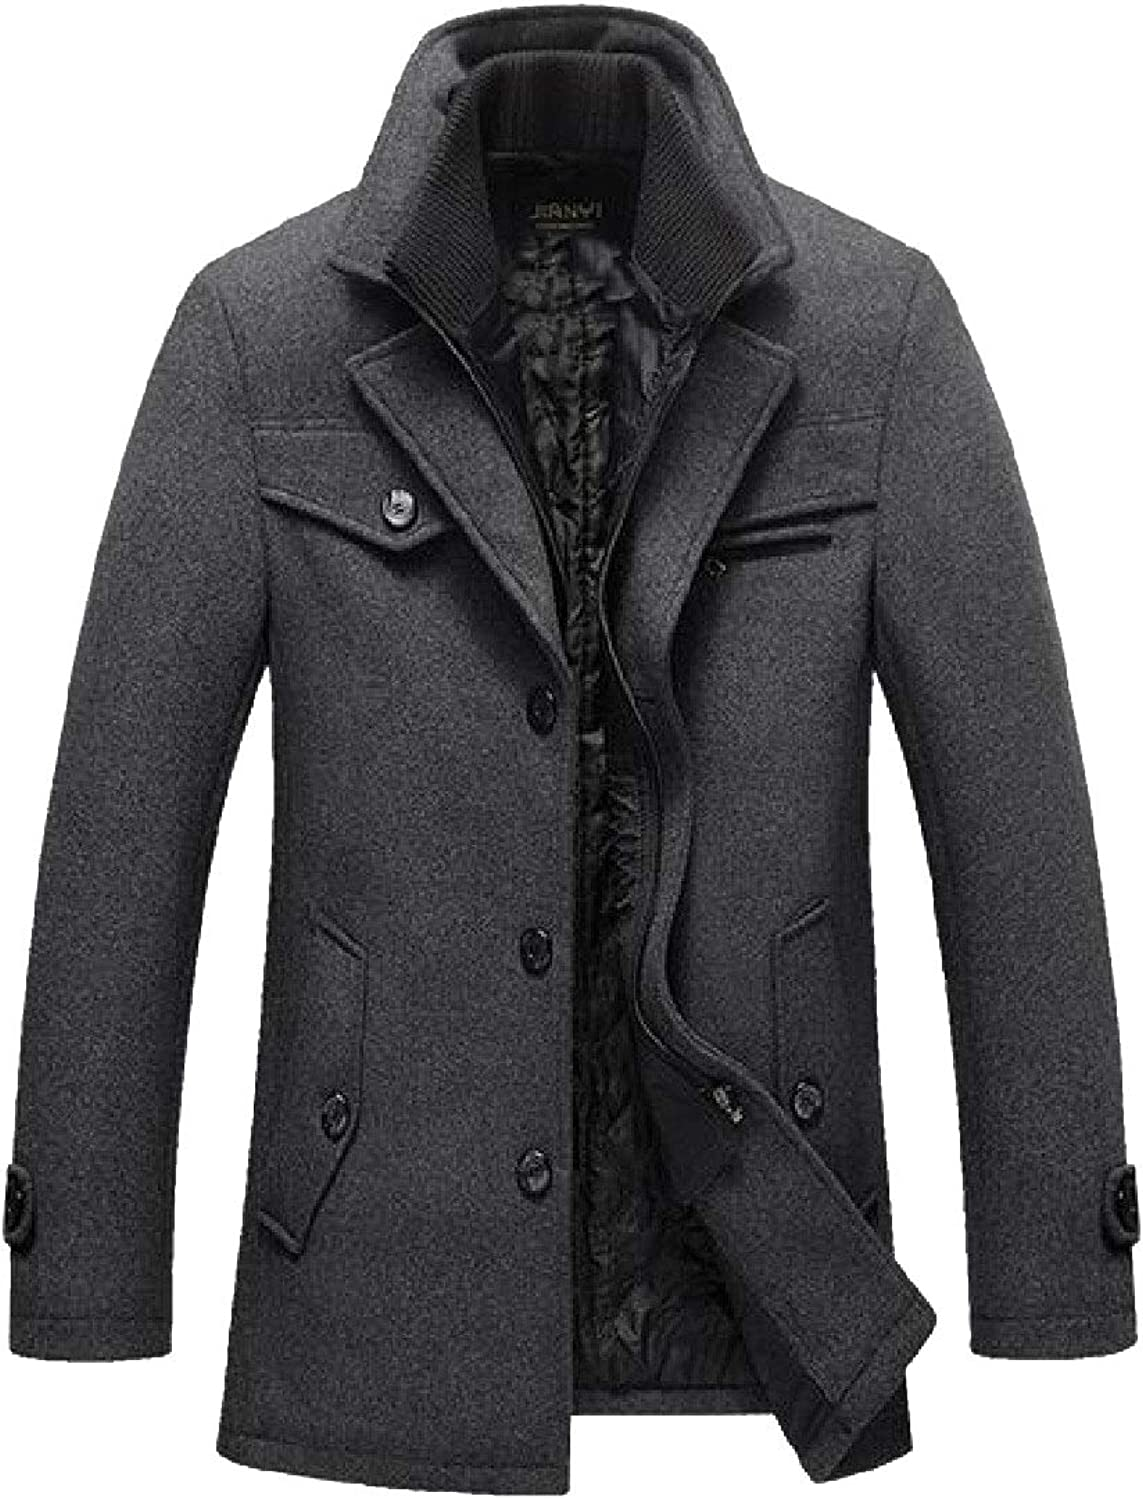 RkBao Mens Business Mid Long Woolen Casual Thicken Wool Trench Coat